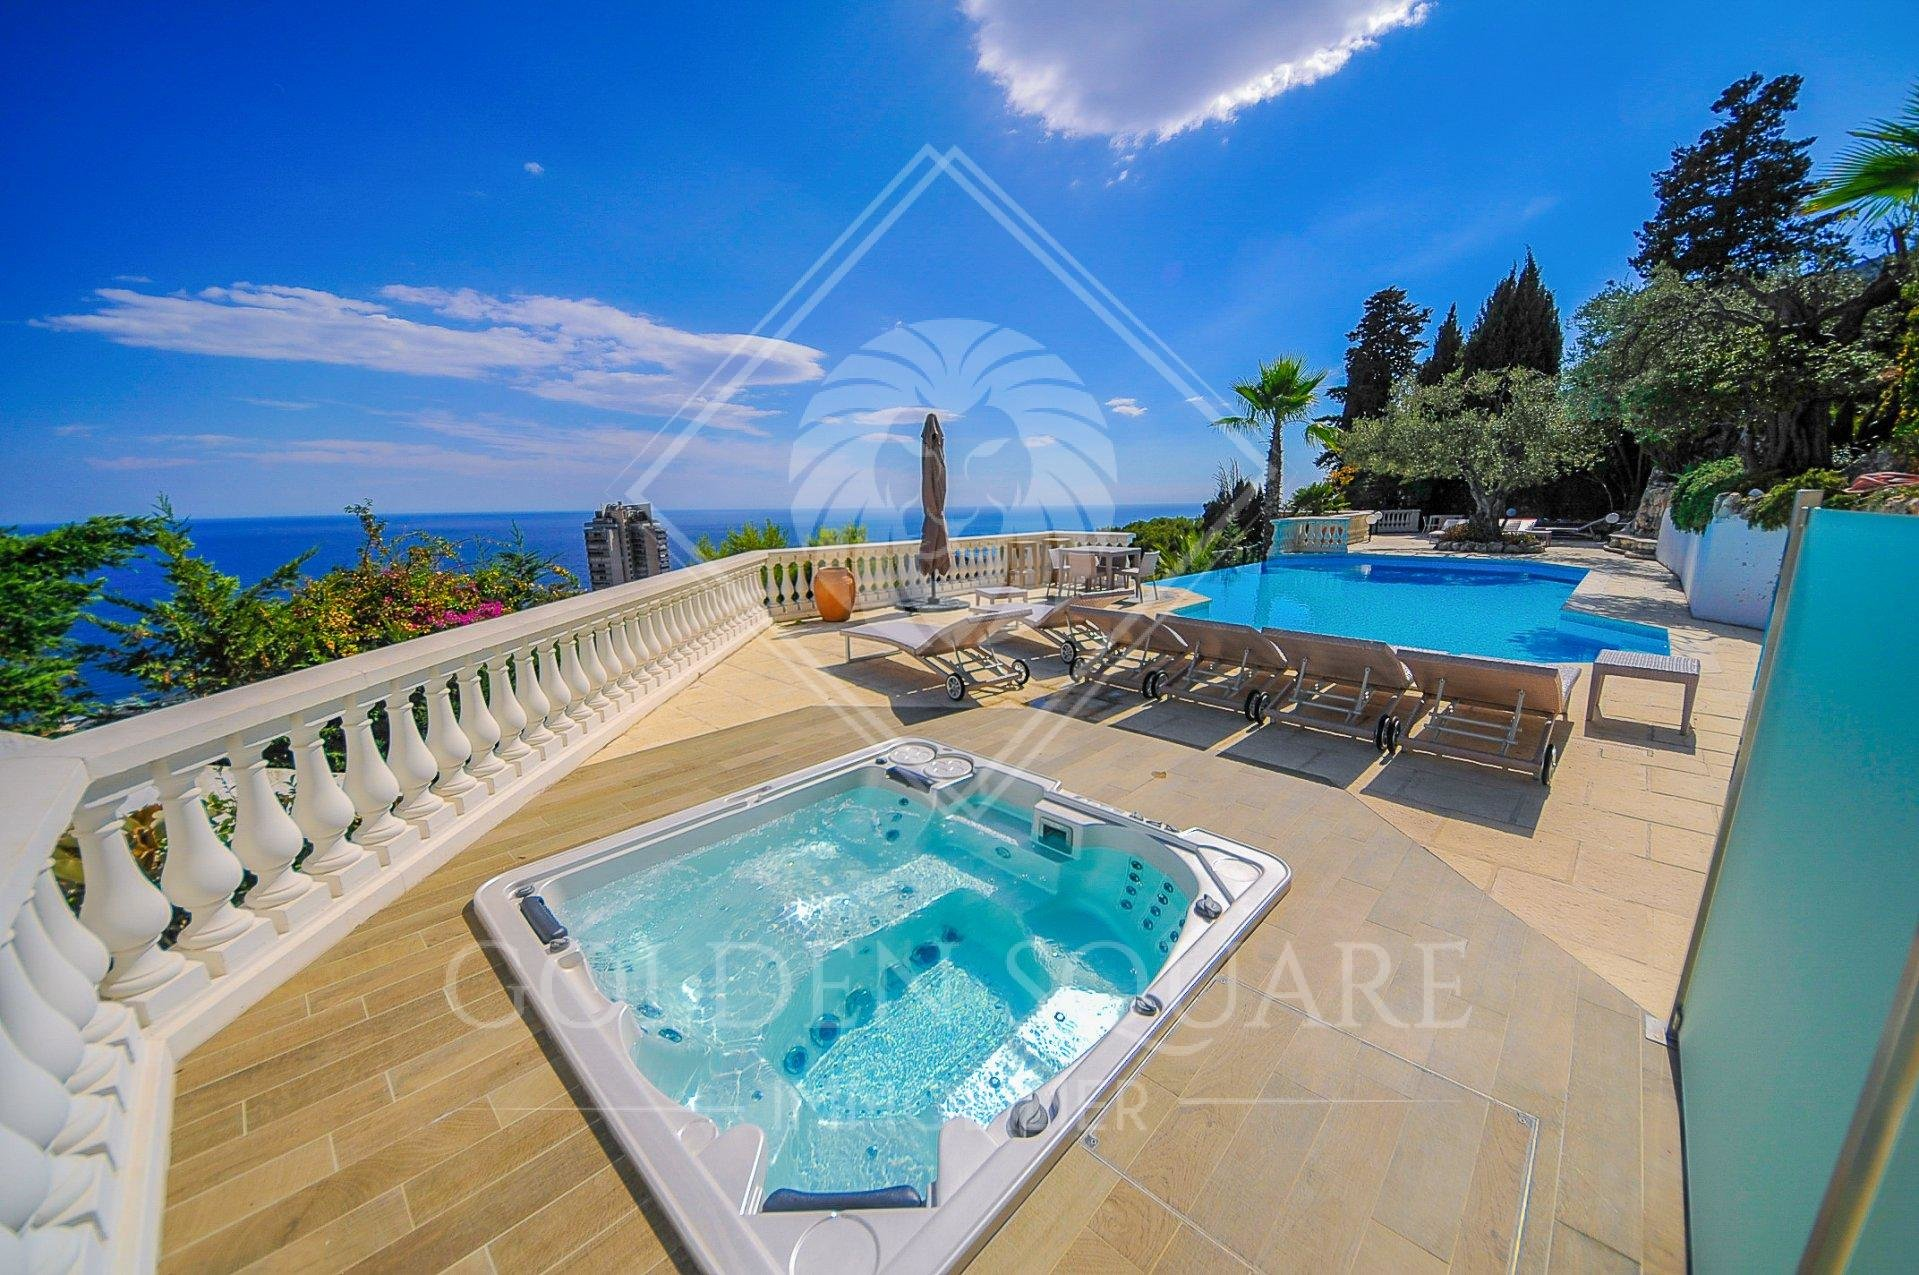 BEAUSOLEIL - LUXURIOUS 4 BEDROOM - PANORAMIC SEAVIEW